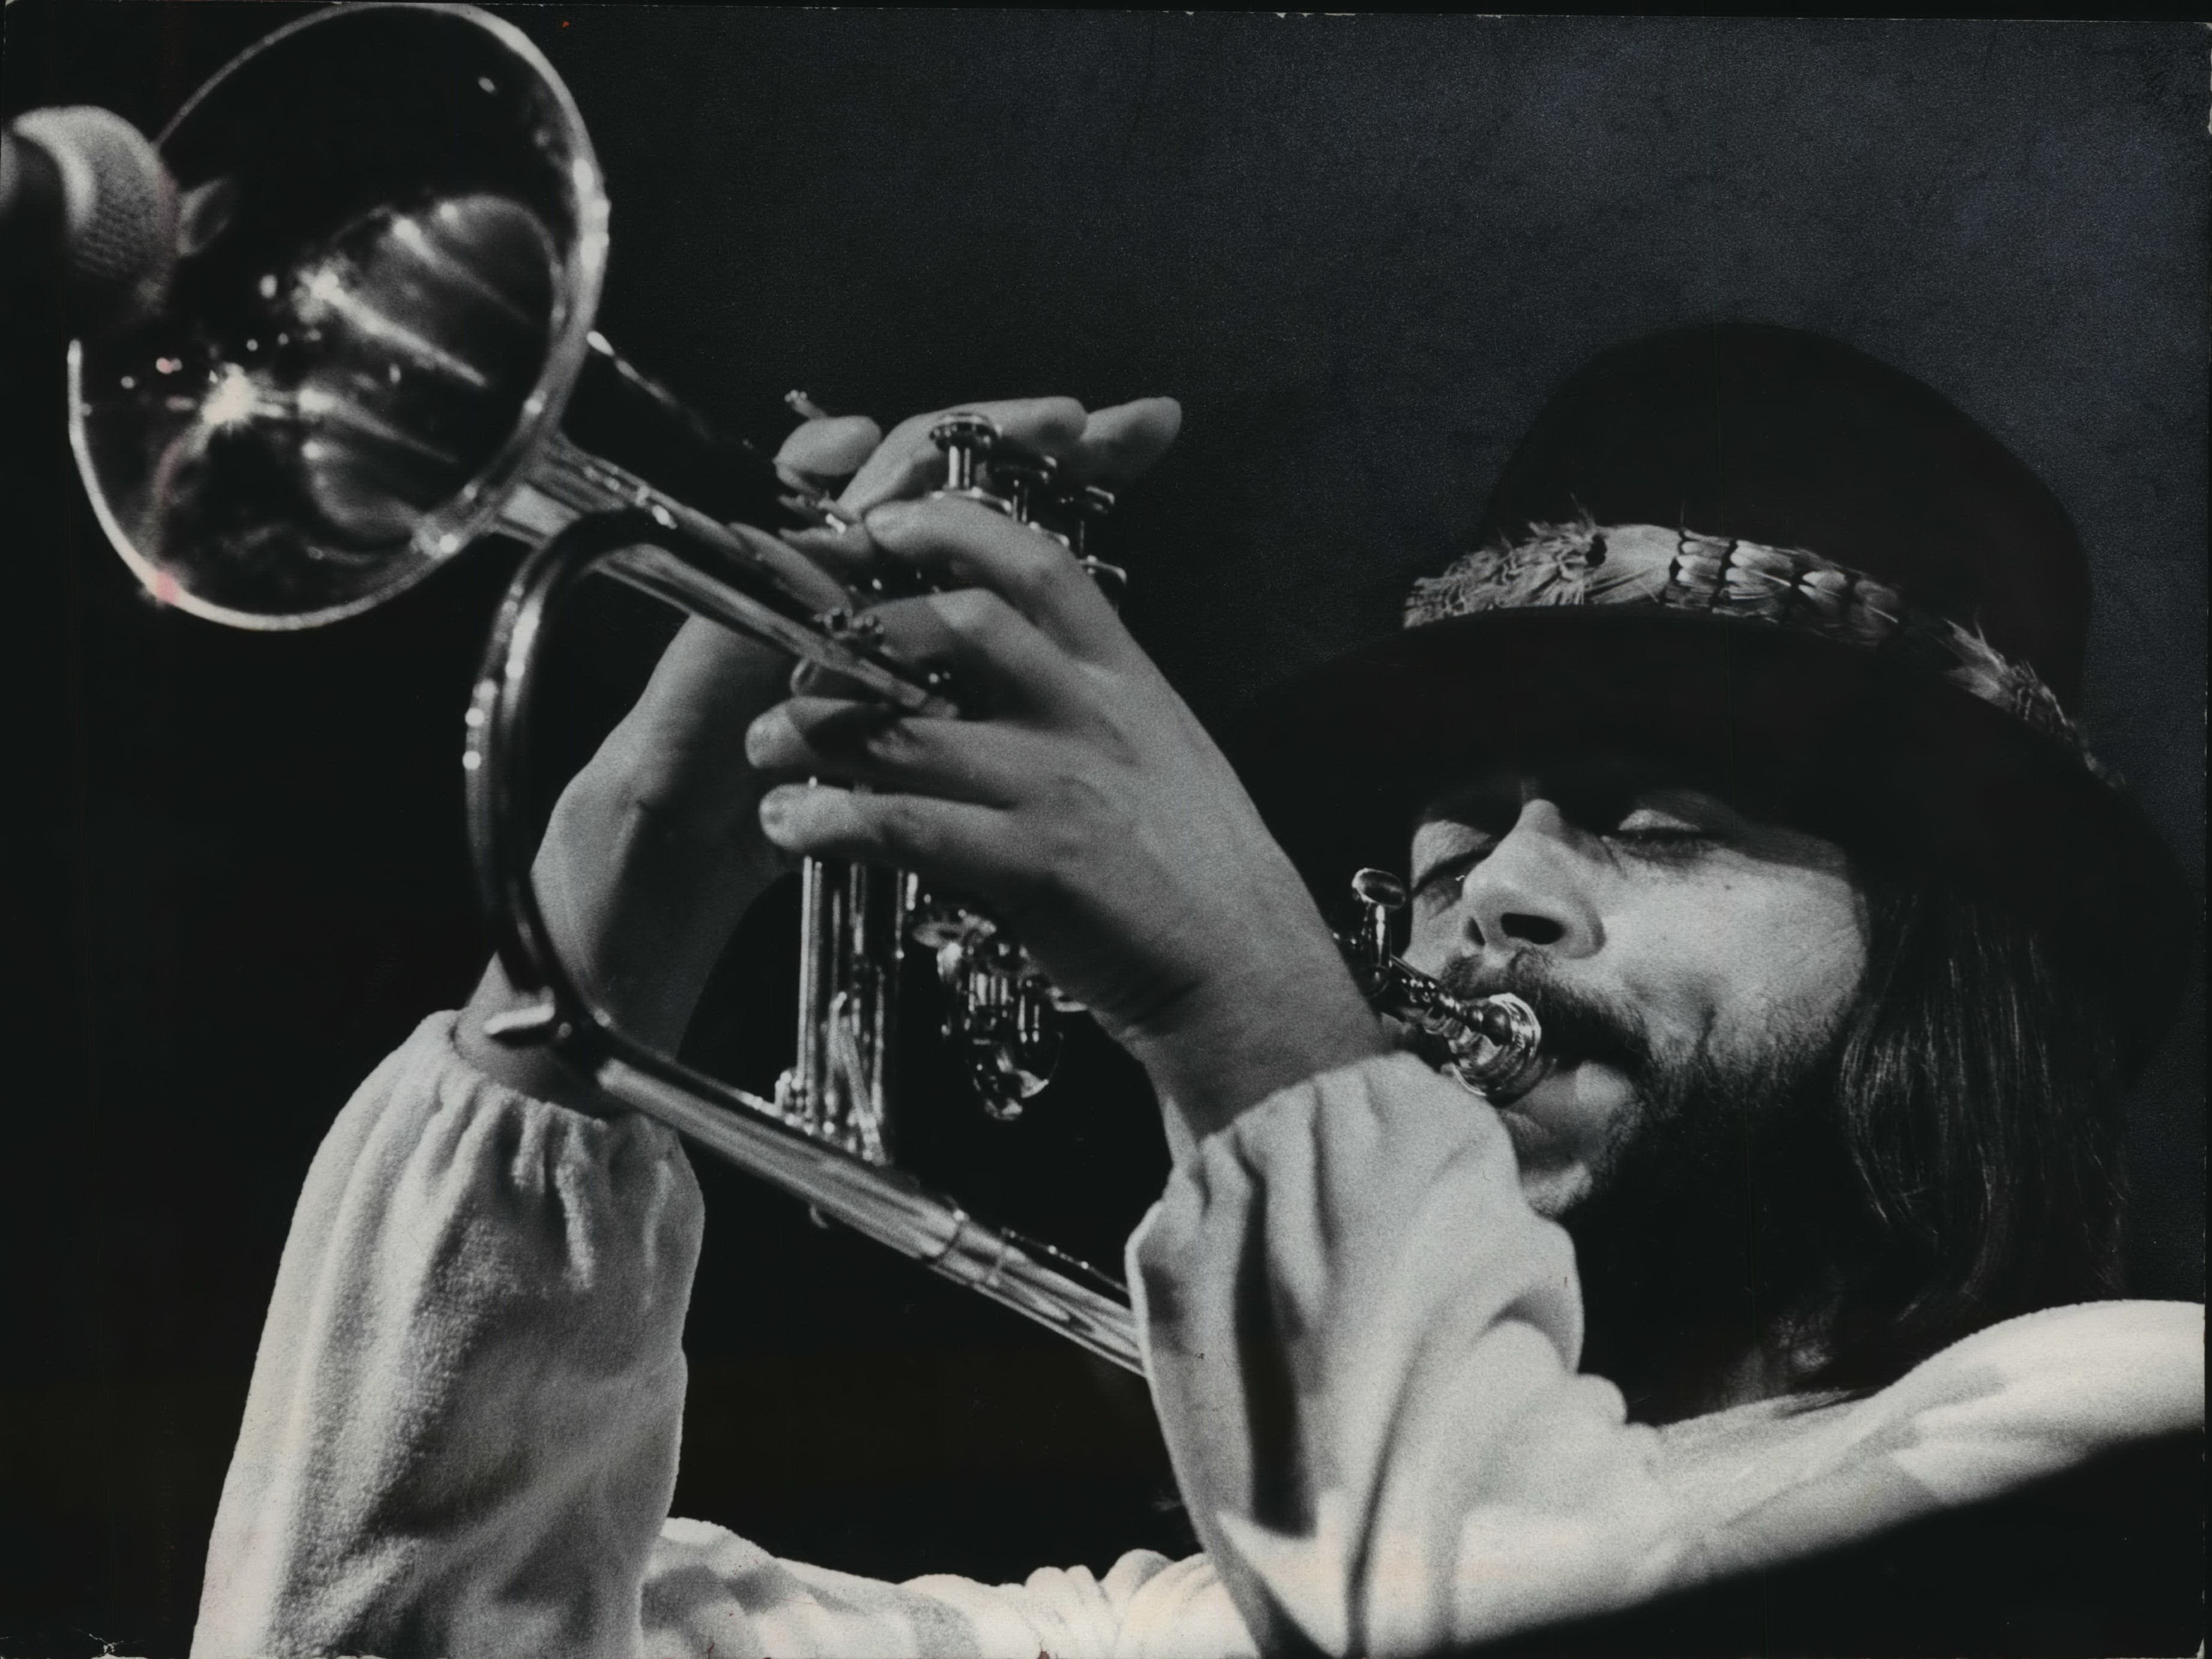 """Jazz musician Chuck Mangione and his quartet, who have played frequently in Milwaukee, will perform live for a national TV audience at 7:30 p.m. Thursday on """"Live From Wolf Trap"""" on PBS. Jazz trumpeter Chuck Mangione at the PAC.  Chuck Mangione, flugelhornist, will play in SummerNights pops concert at 8 tonight and Saturday with the Milwaukee Symphony Orchestra at the PAC. $6 to $24."""